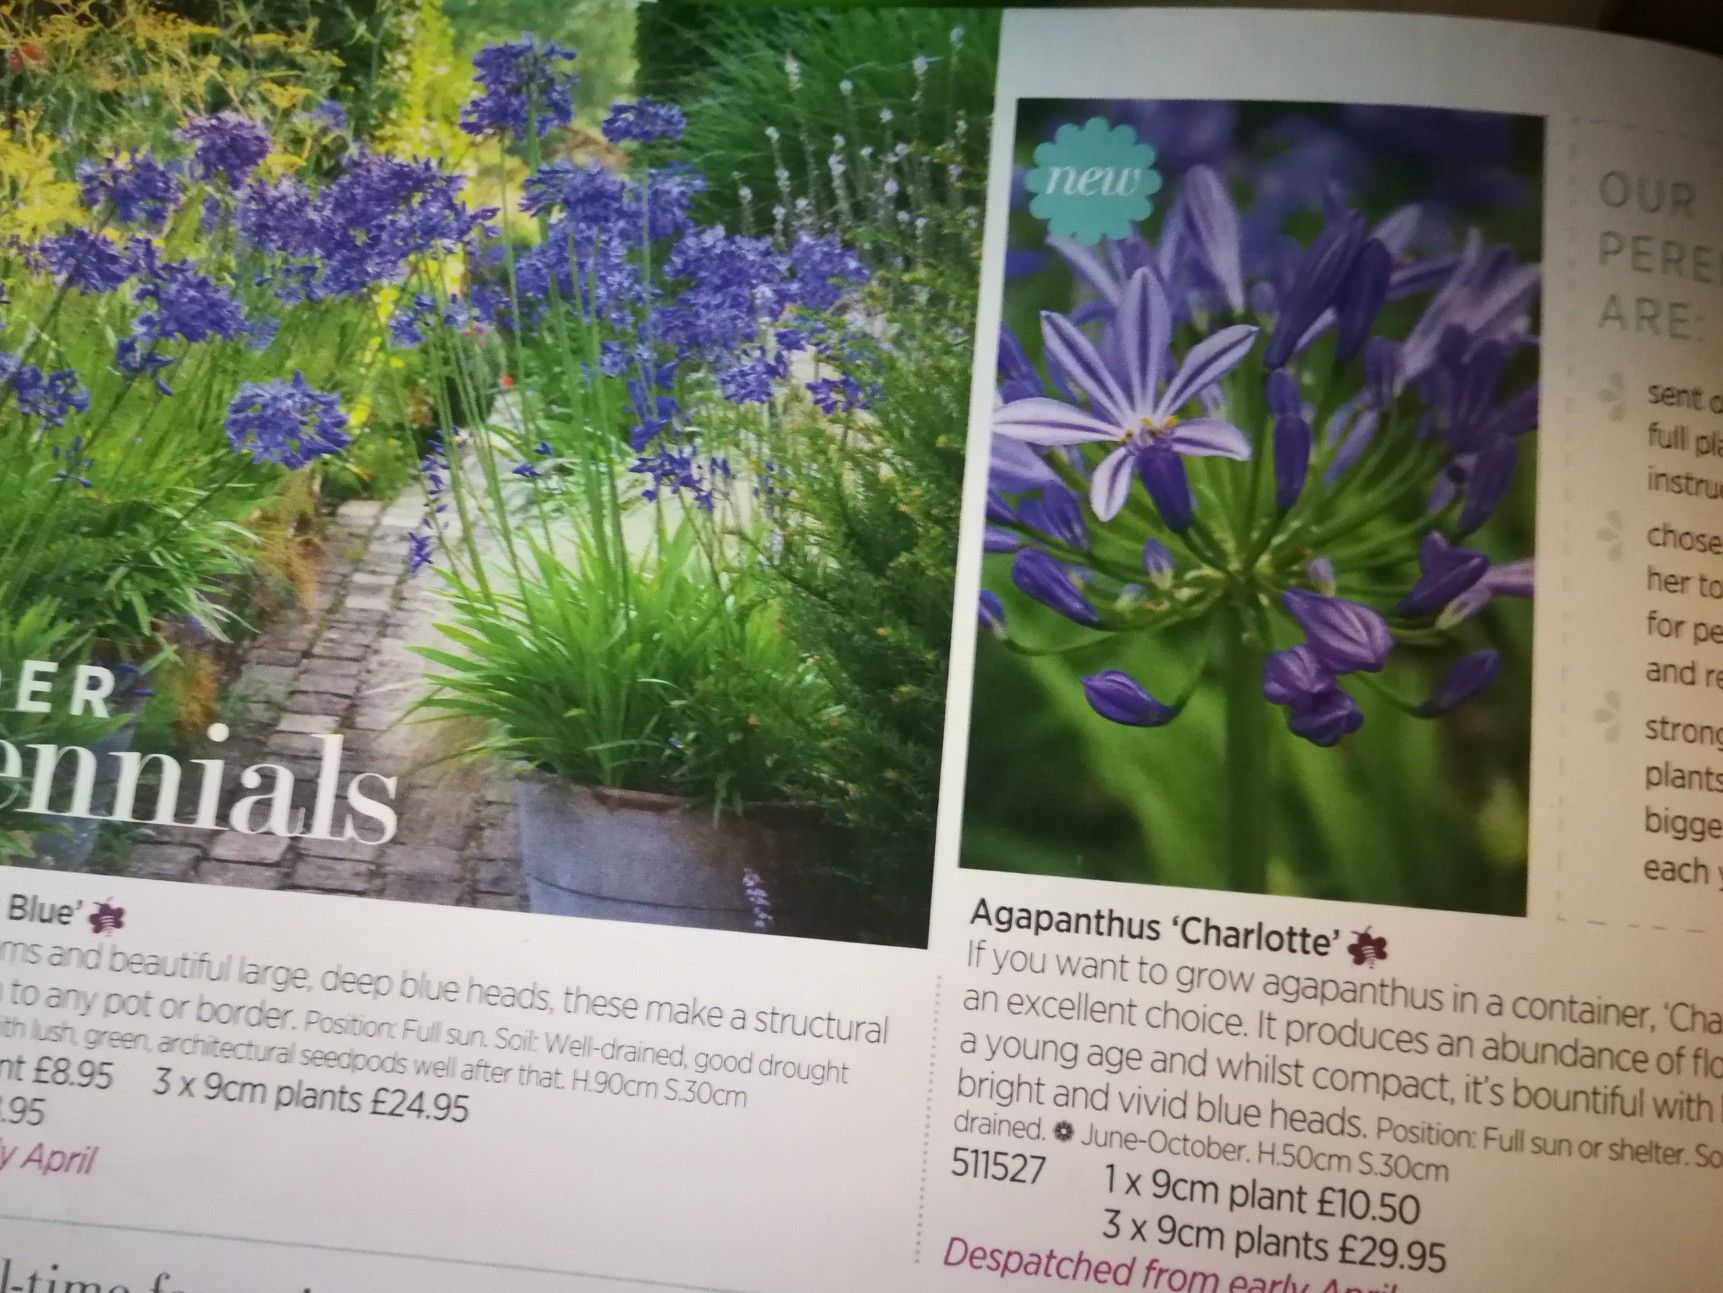 Pin By Jennifer Compton On Flowers In 2020 Plants Agapanthus Flowers